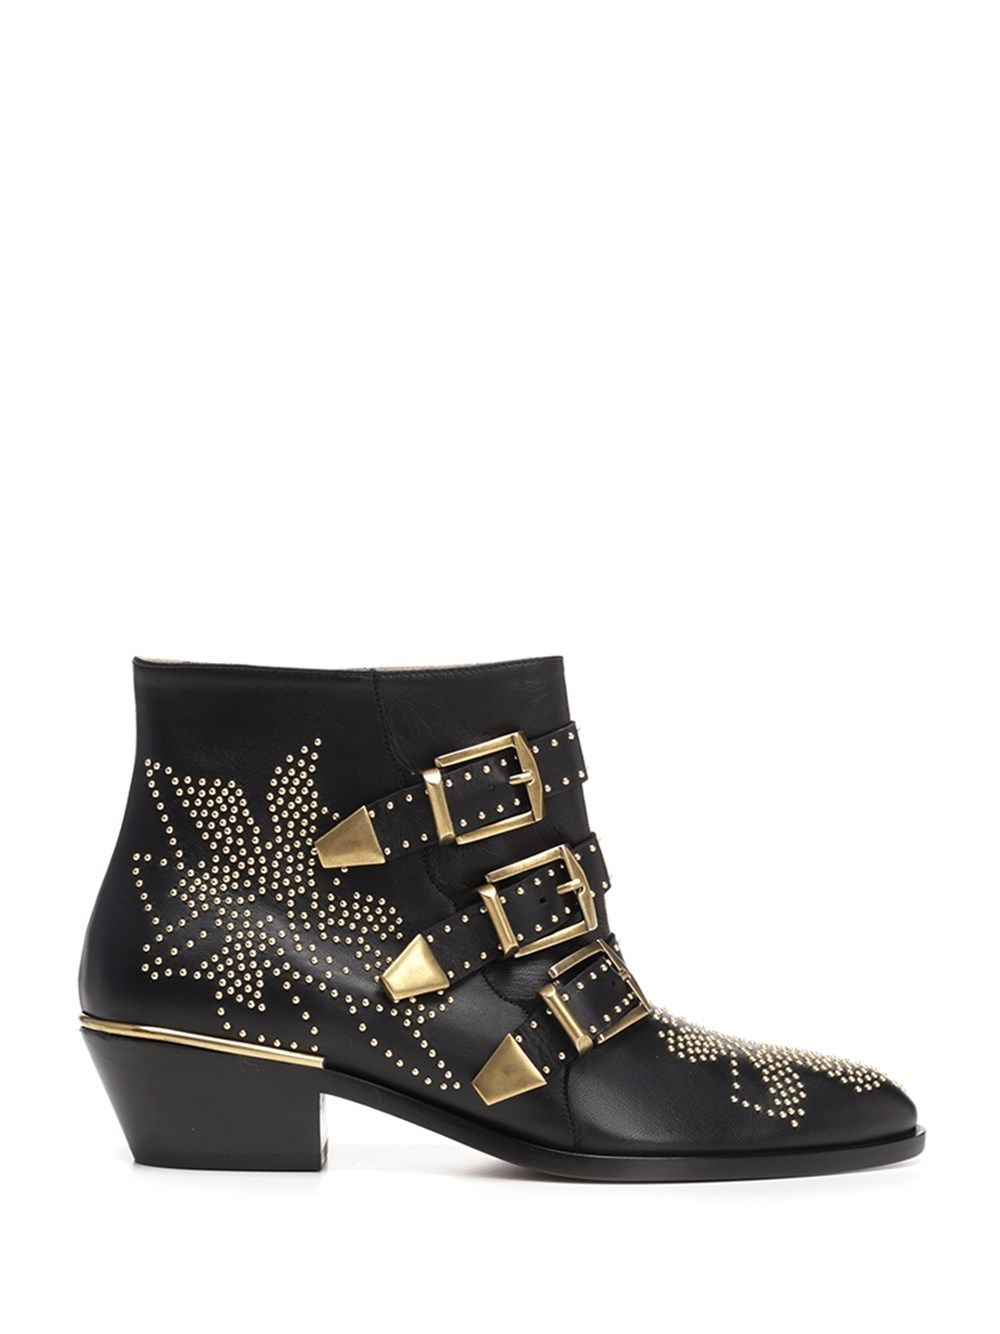 Chloé Ankle highs CHLO WOMEN'S CHC16A134750ZY BLACK OTHER MATERIALS ANKLE BOOTS